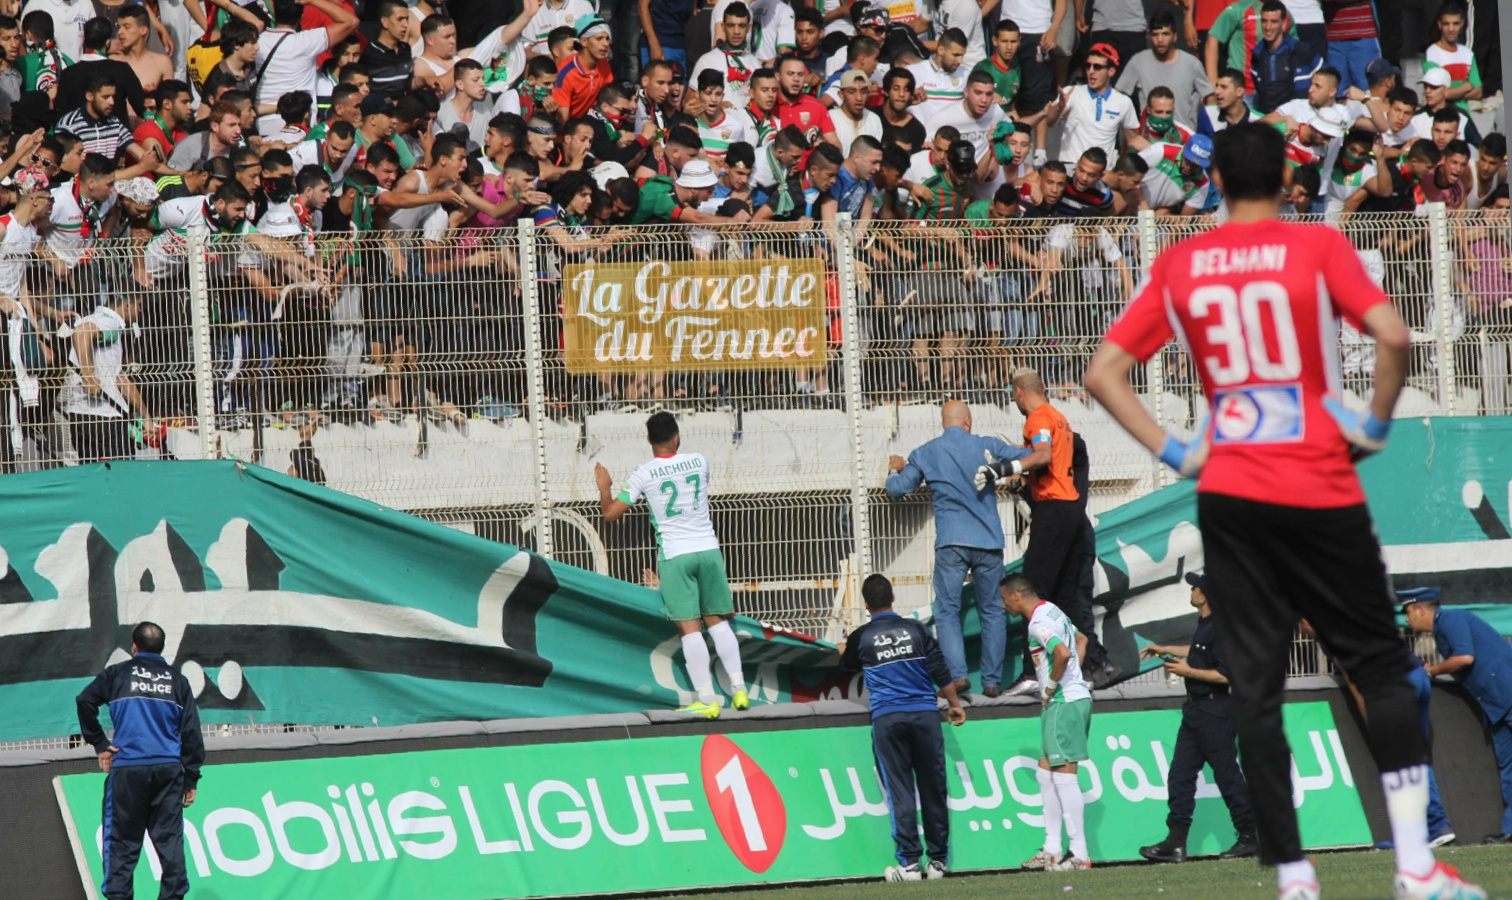 violence ligue 1 chaouchi mca ghrib